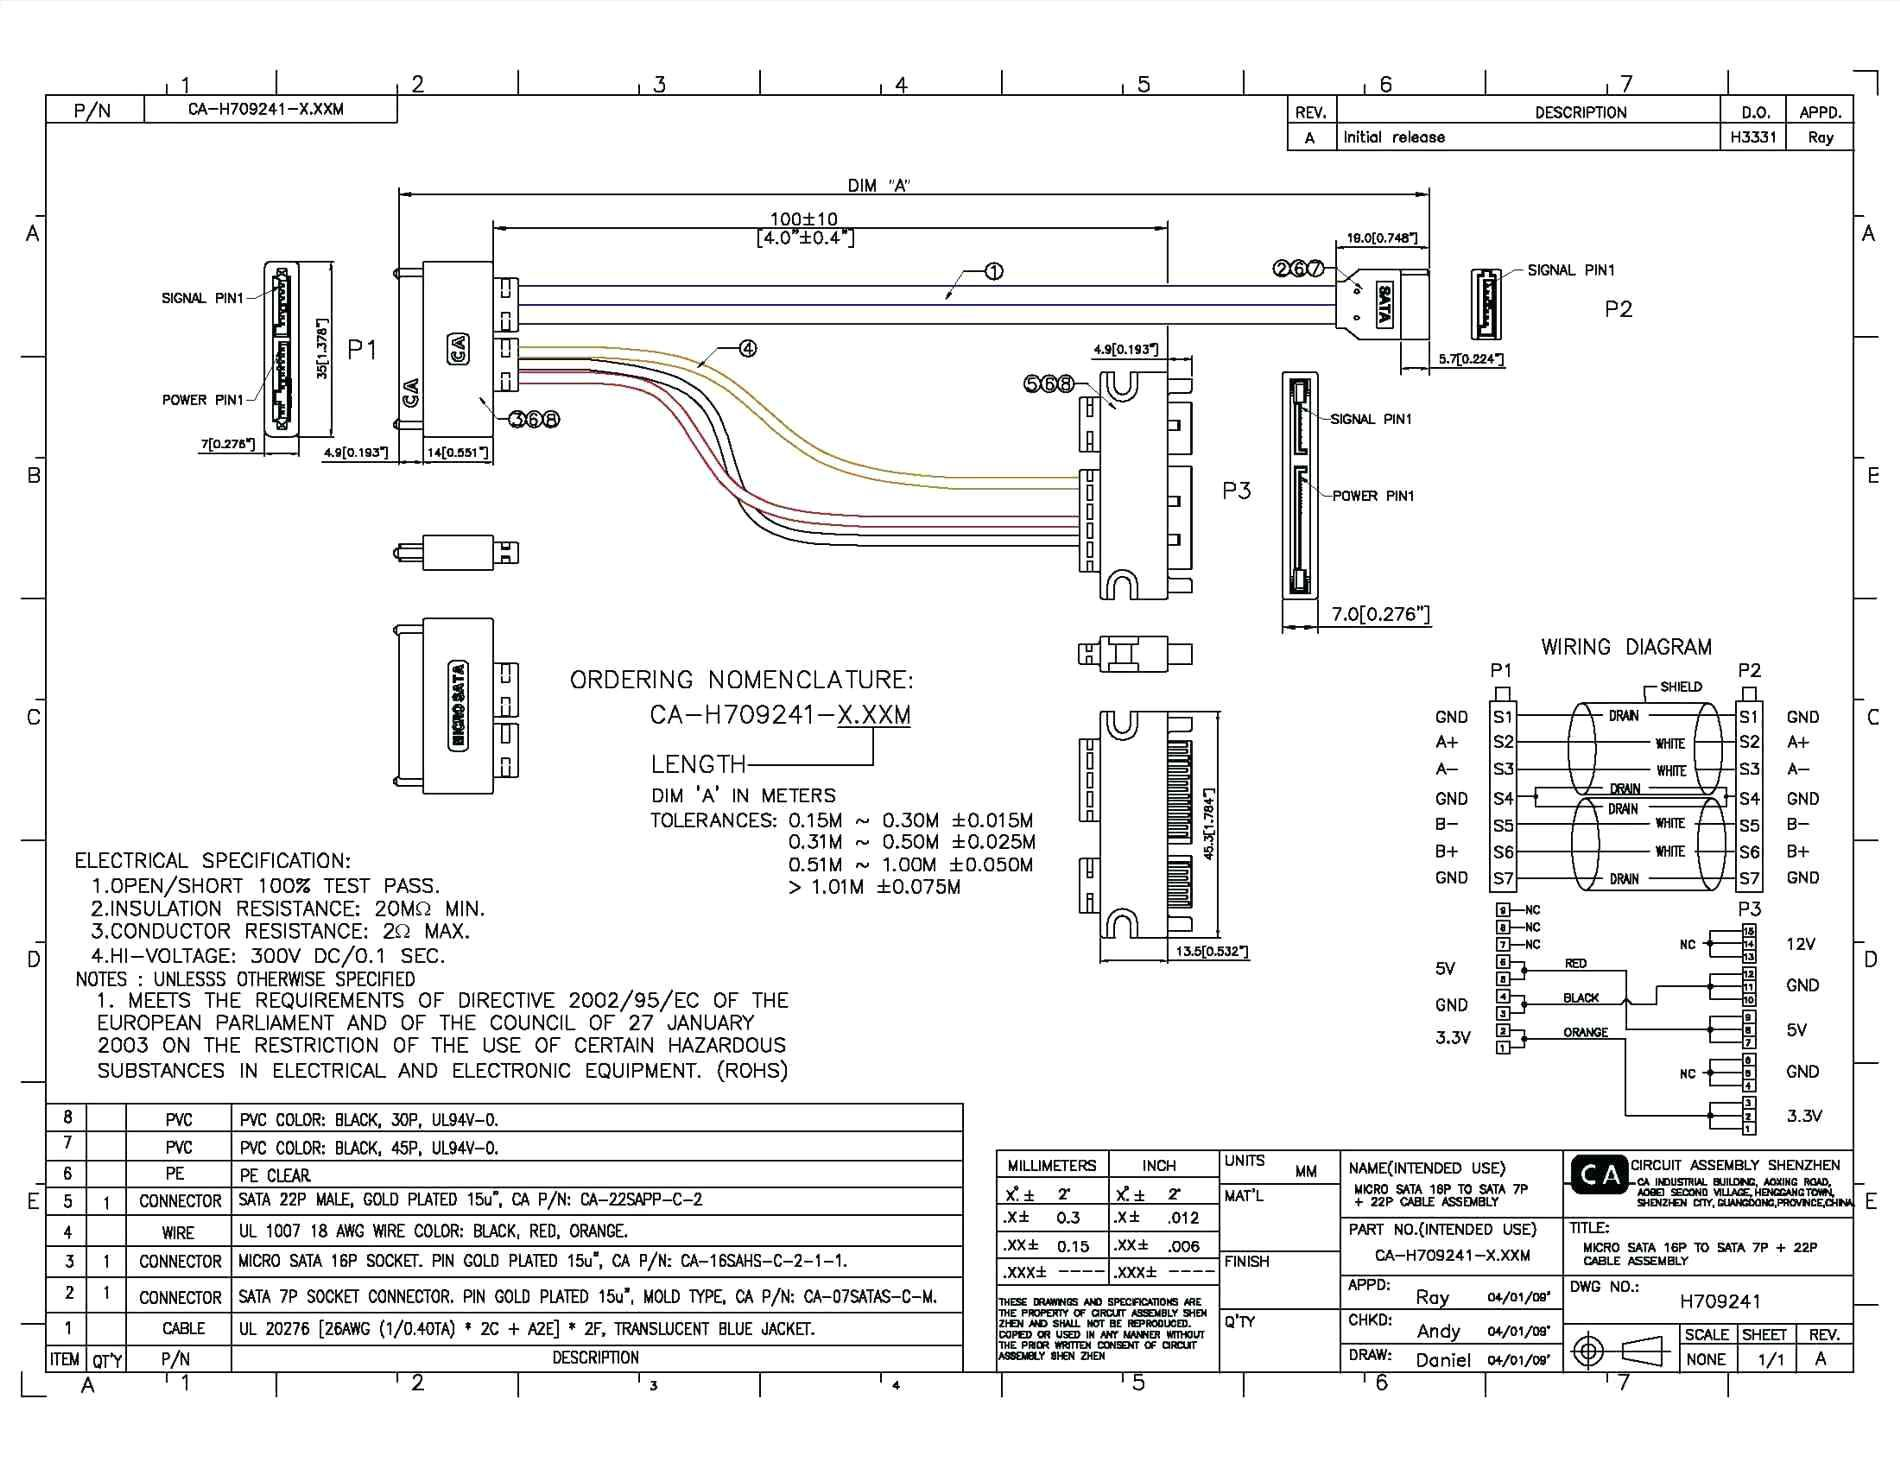 [QMVU_8575]  Sata to Usb Cable Wiring Diagram Copy Usb Serial Wiring Diagram I to Of  Timing Port Cable Connection | Hdmi, Usb, Usb cable | Internal Usb Wiring Diagram |  | Pinterest